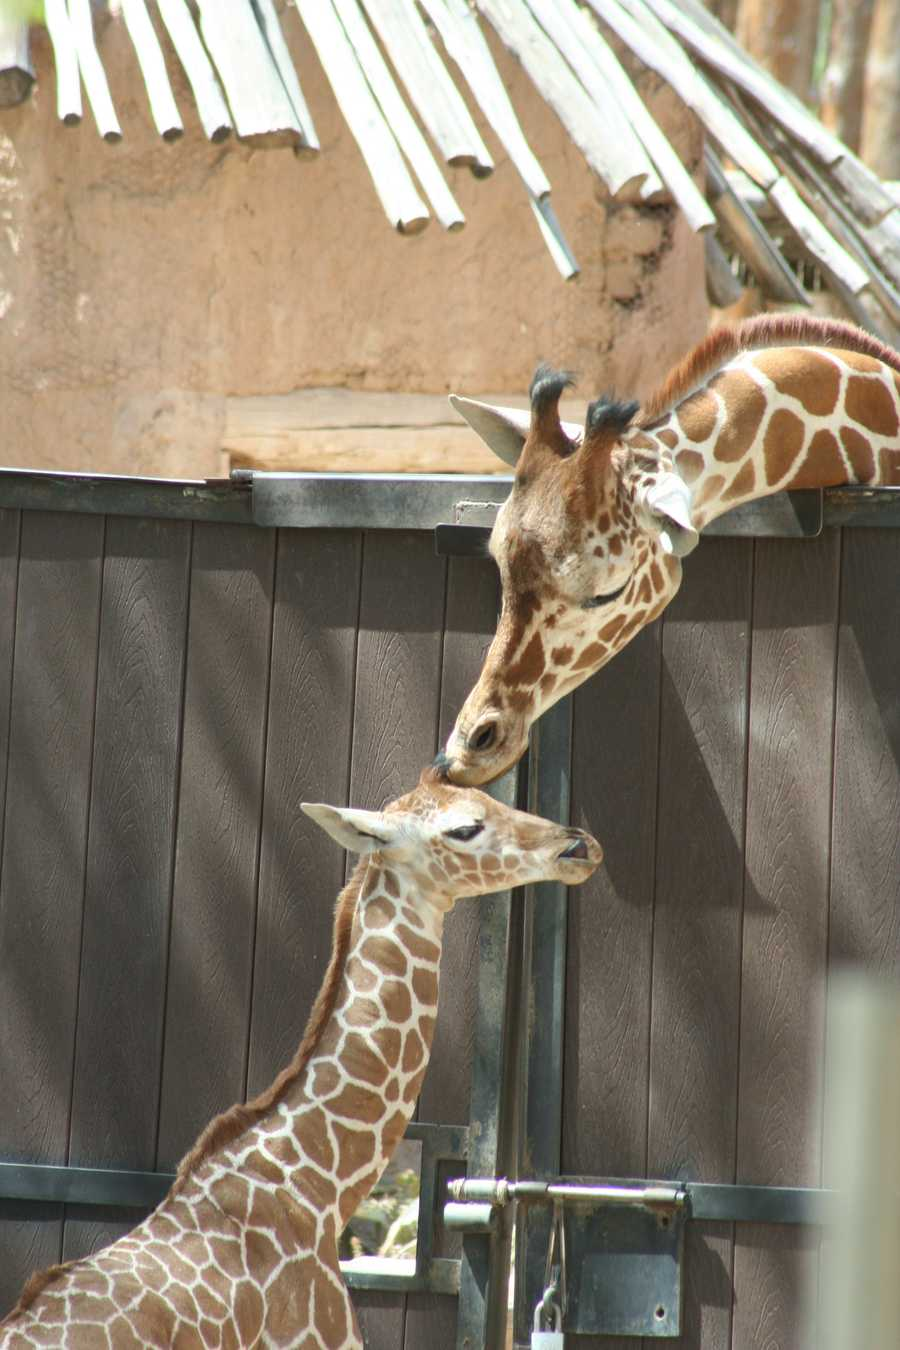 In summer, zoo patrons can help feed the giraffe herd at noon on Wednesdays-Sundays.